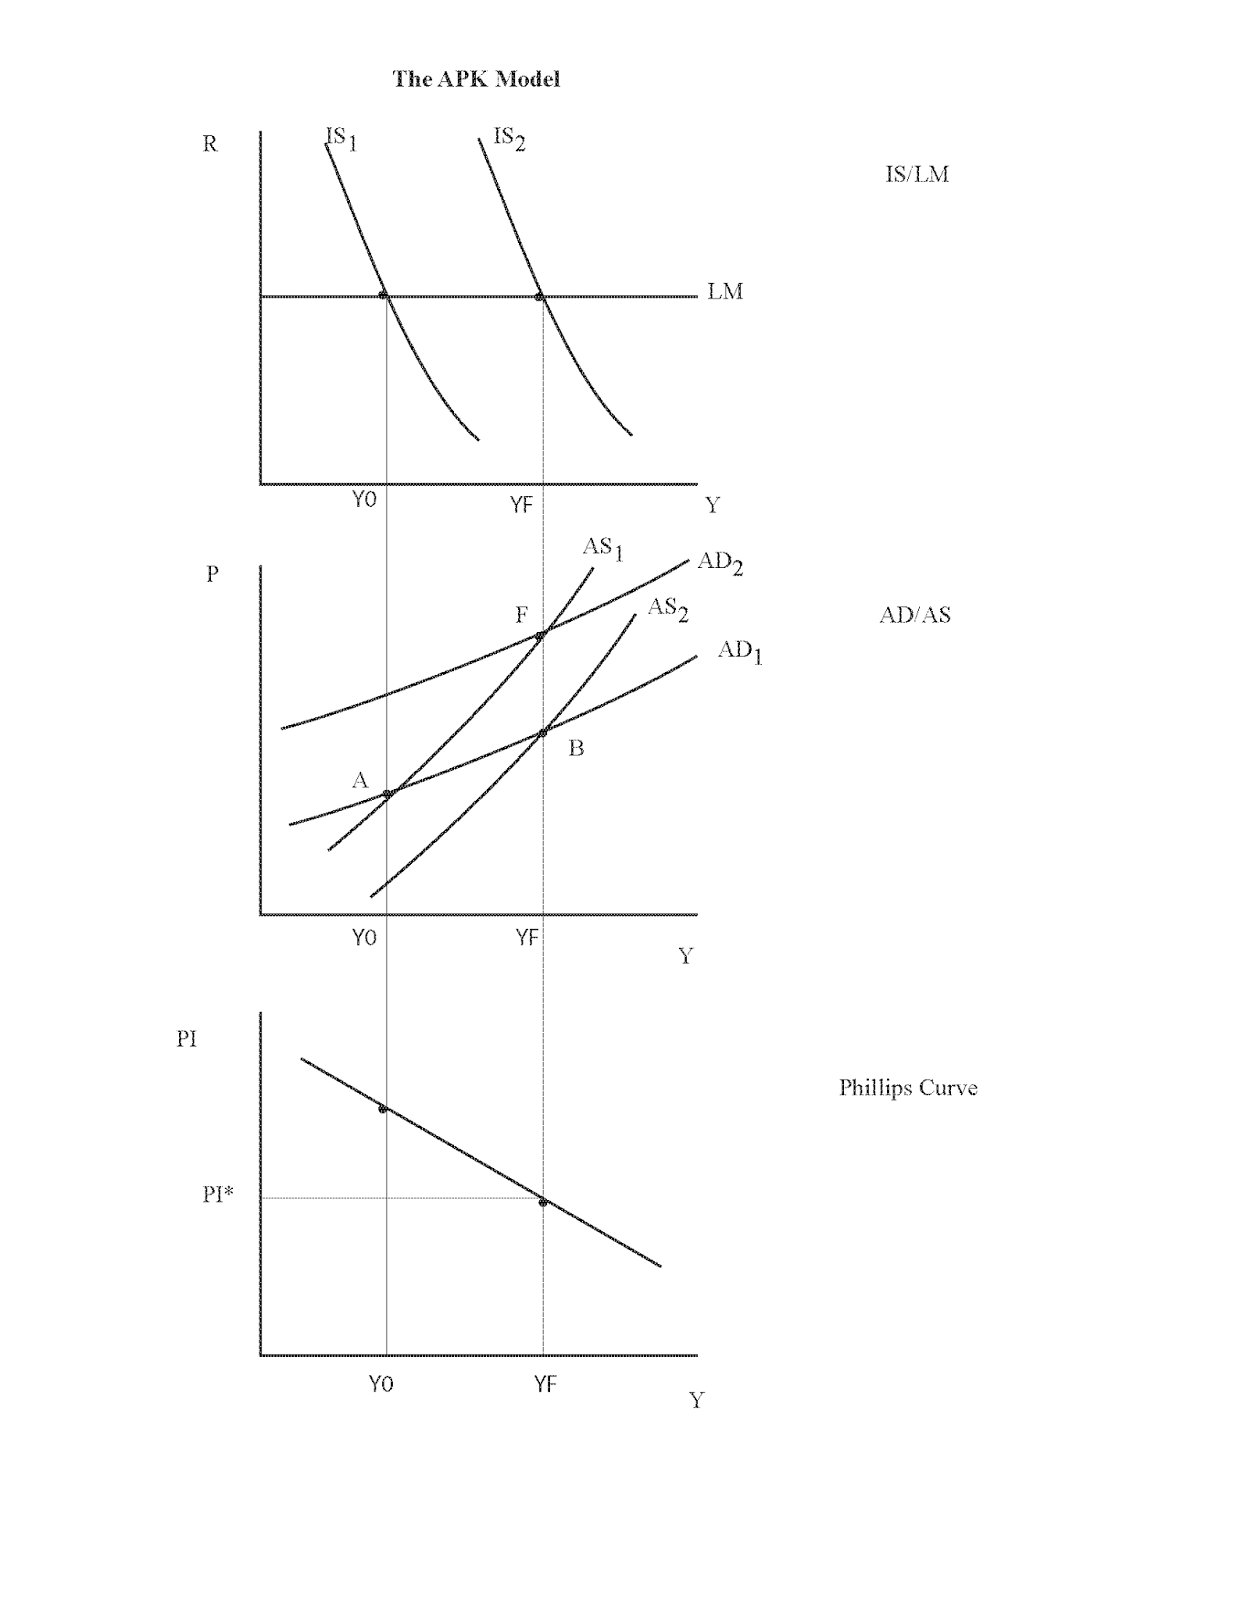 hight resolution of in the is lm part of the diagram we have the liquidity trap case with a flat lm curve in the ad as portion of the diagram the ad curve is